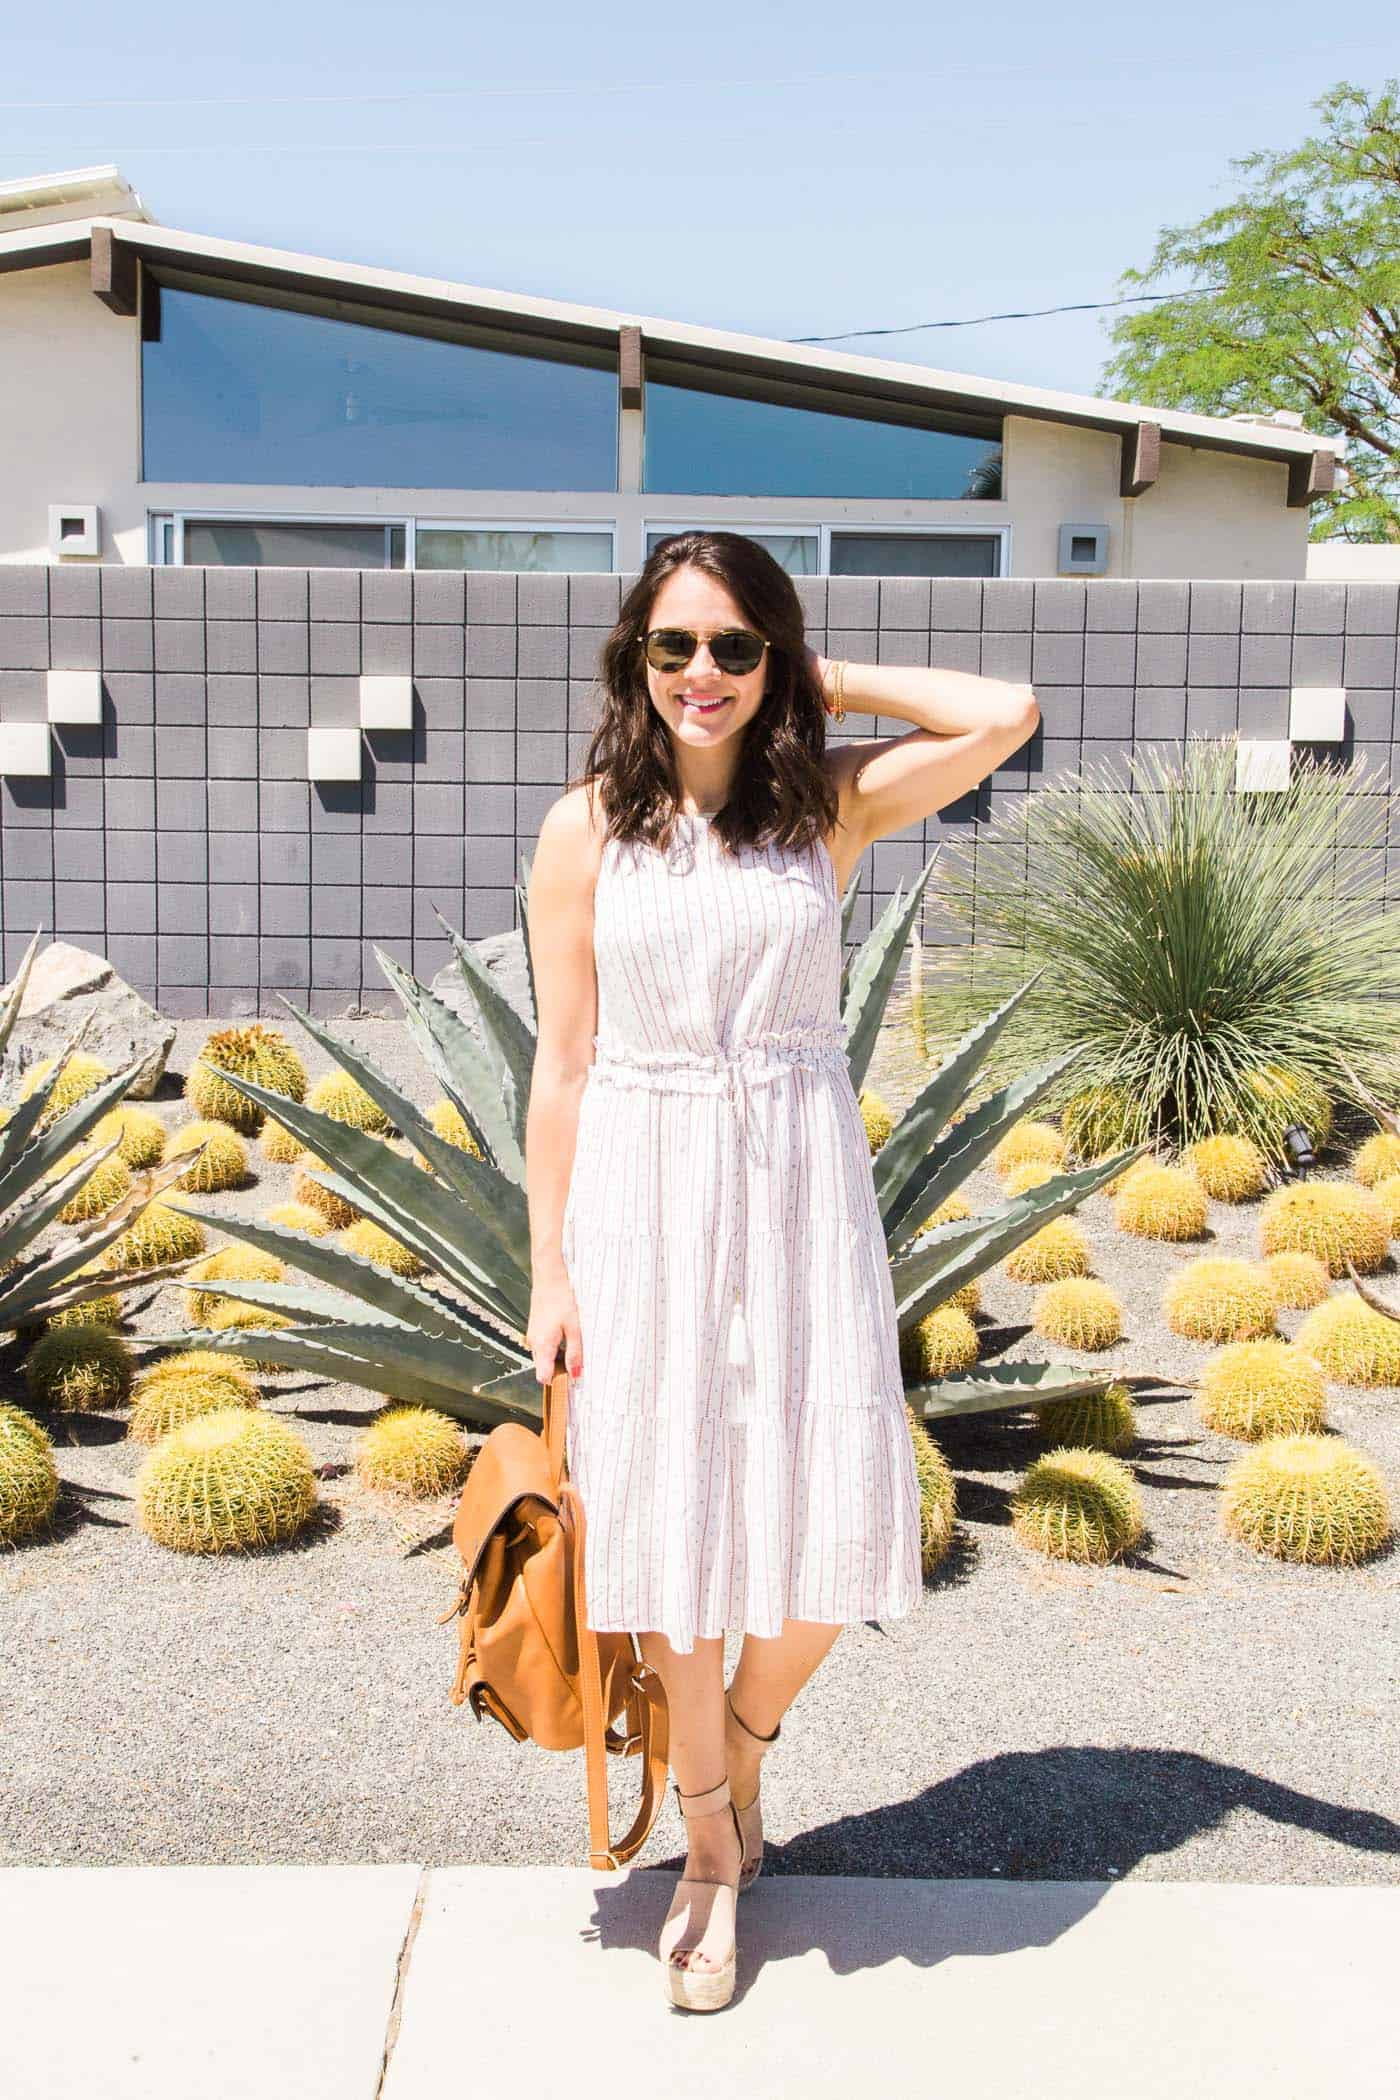 midi length white dress for summer - palm springs - palm trees - My Style Vita @mystylevita